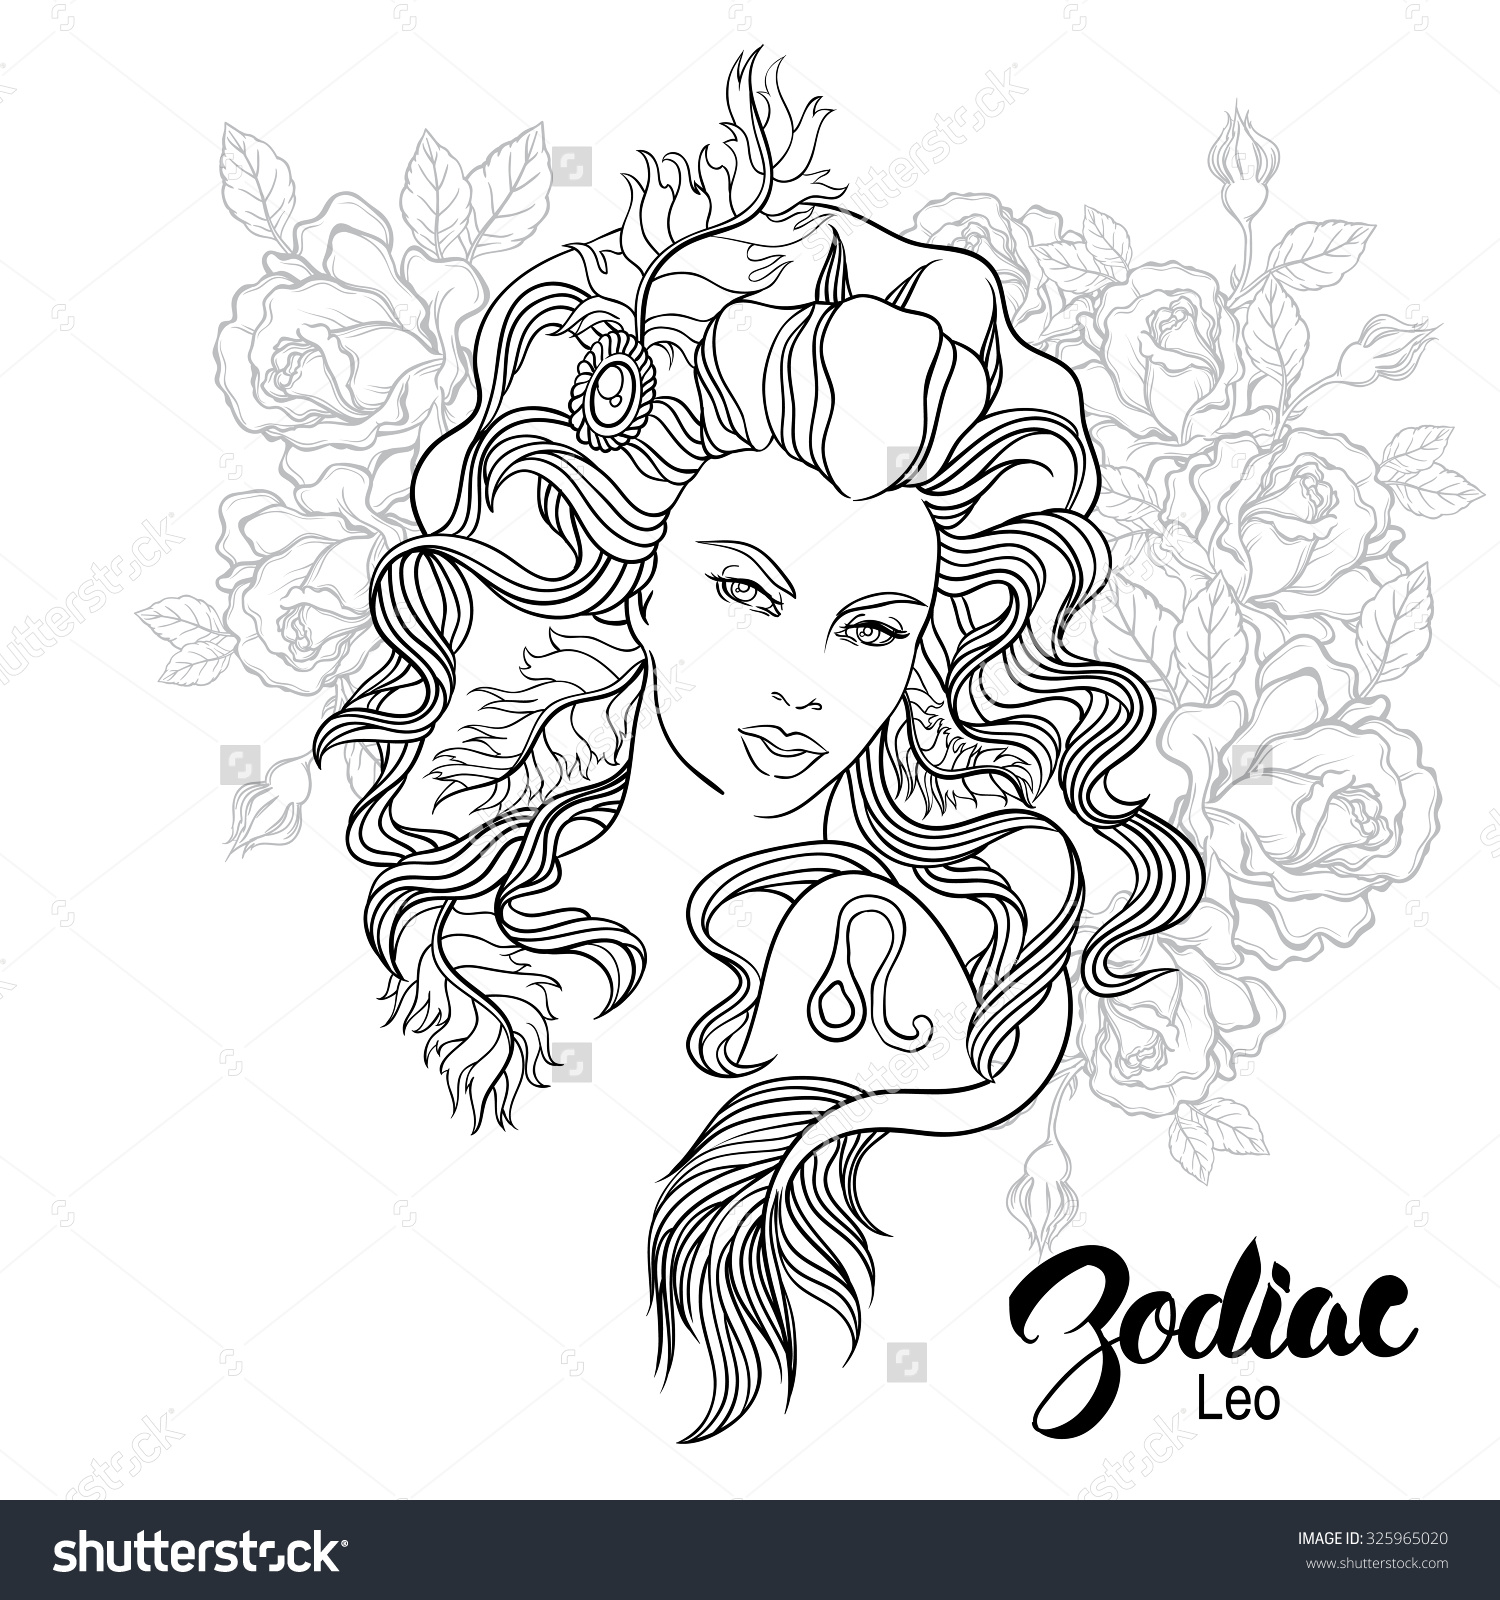 Leo astrology coloring download leo astrology coloring for Leo coloring pages